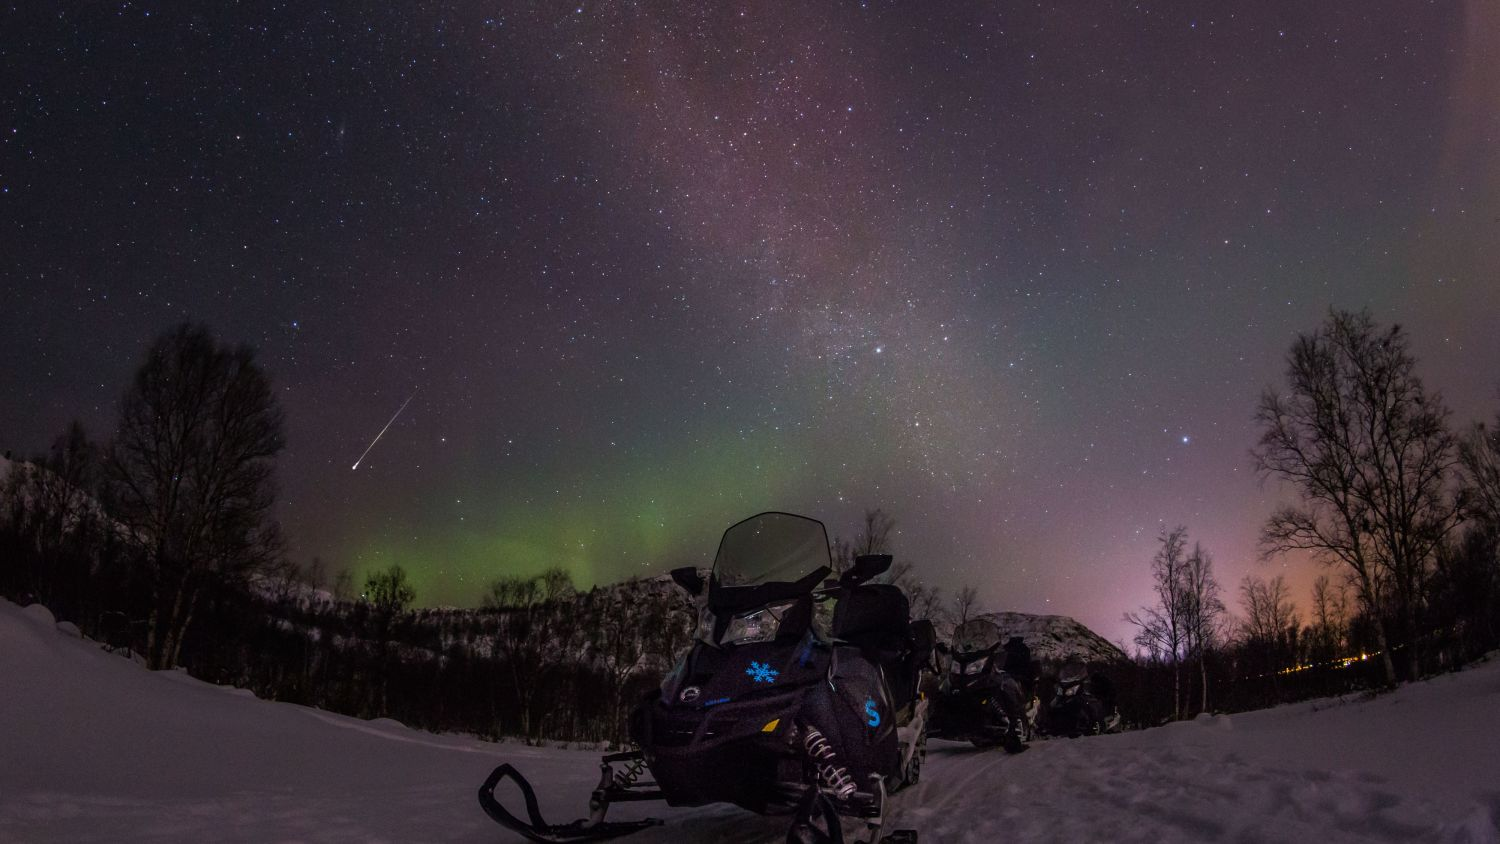 Snowmobiling in the winter night, photo: Nicolas Vera-Ortiz